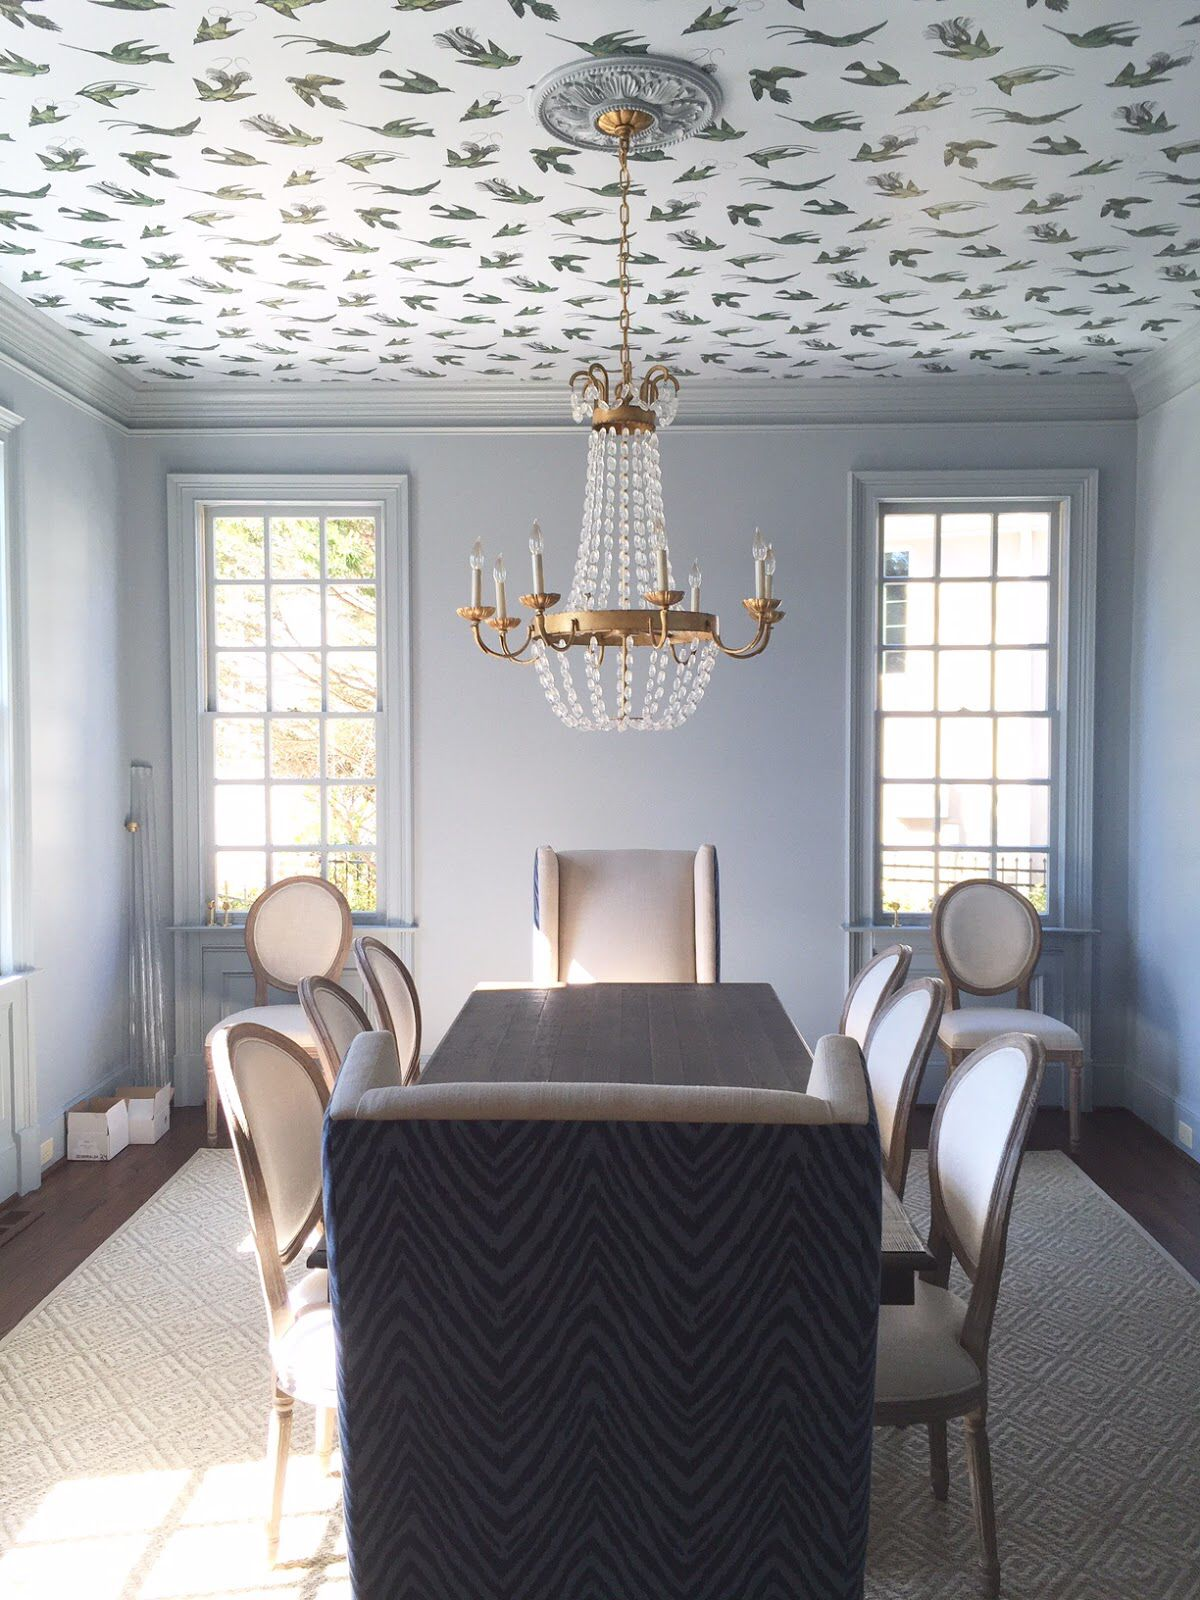 Statement Ceilings - Interior Design Trends of 2019